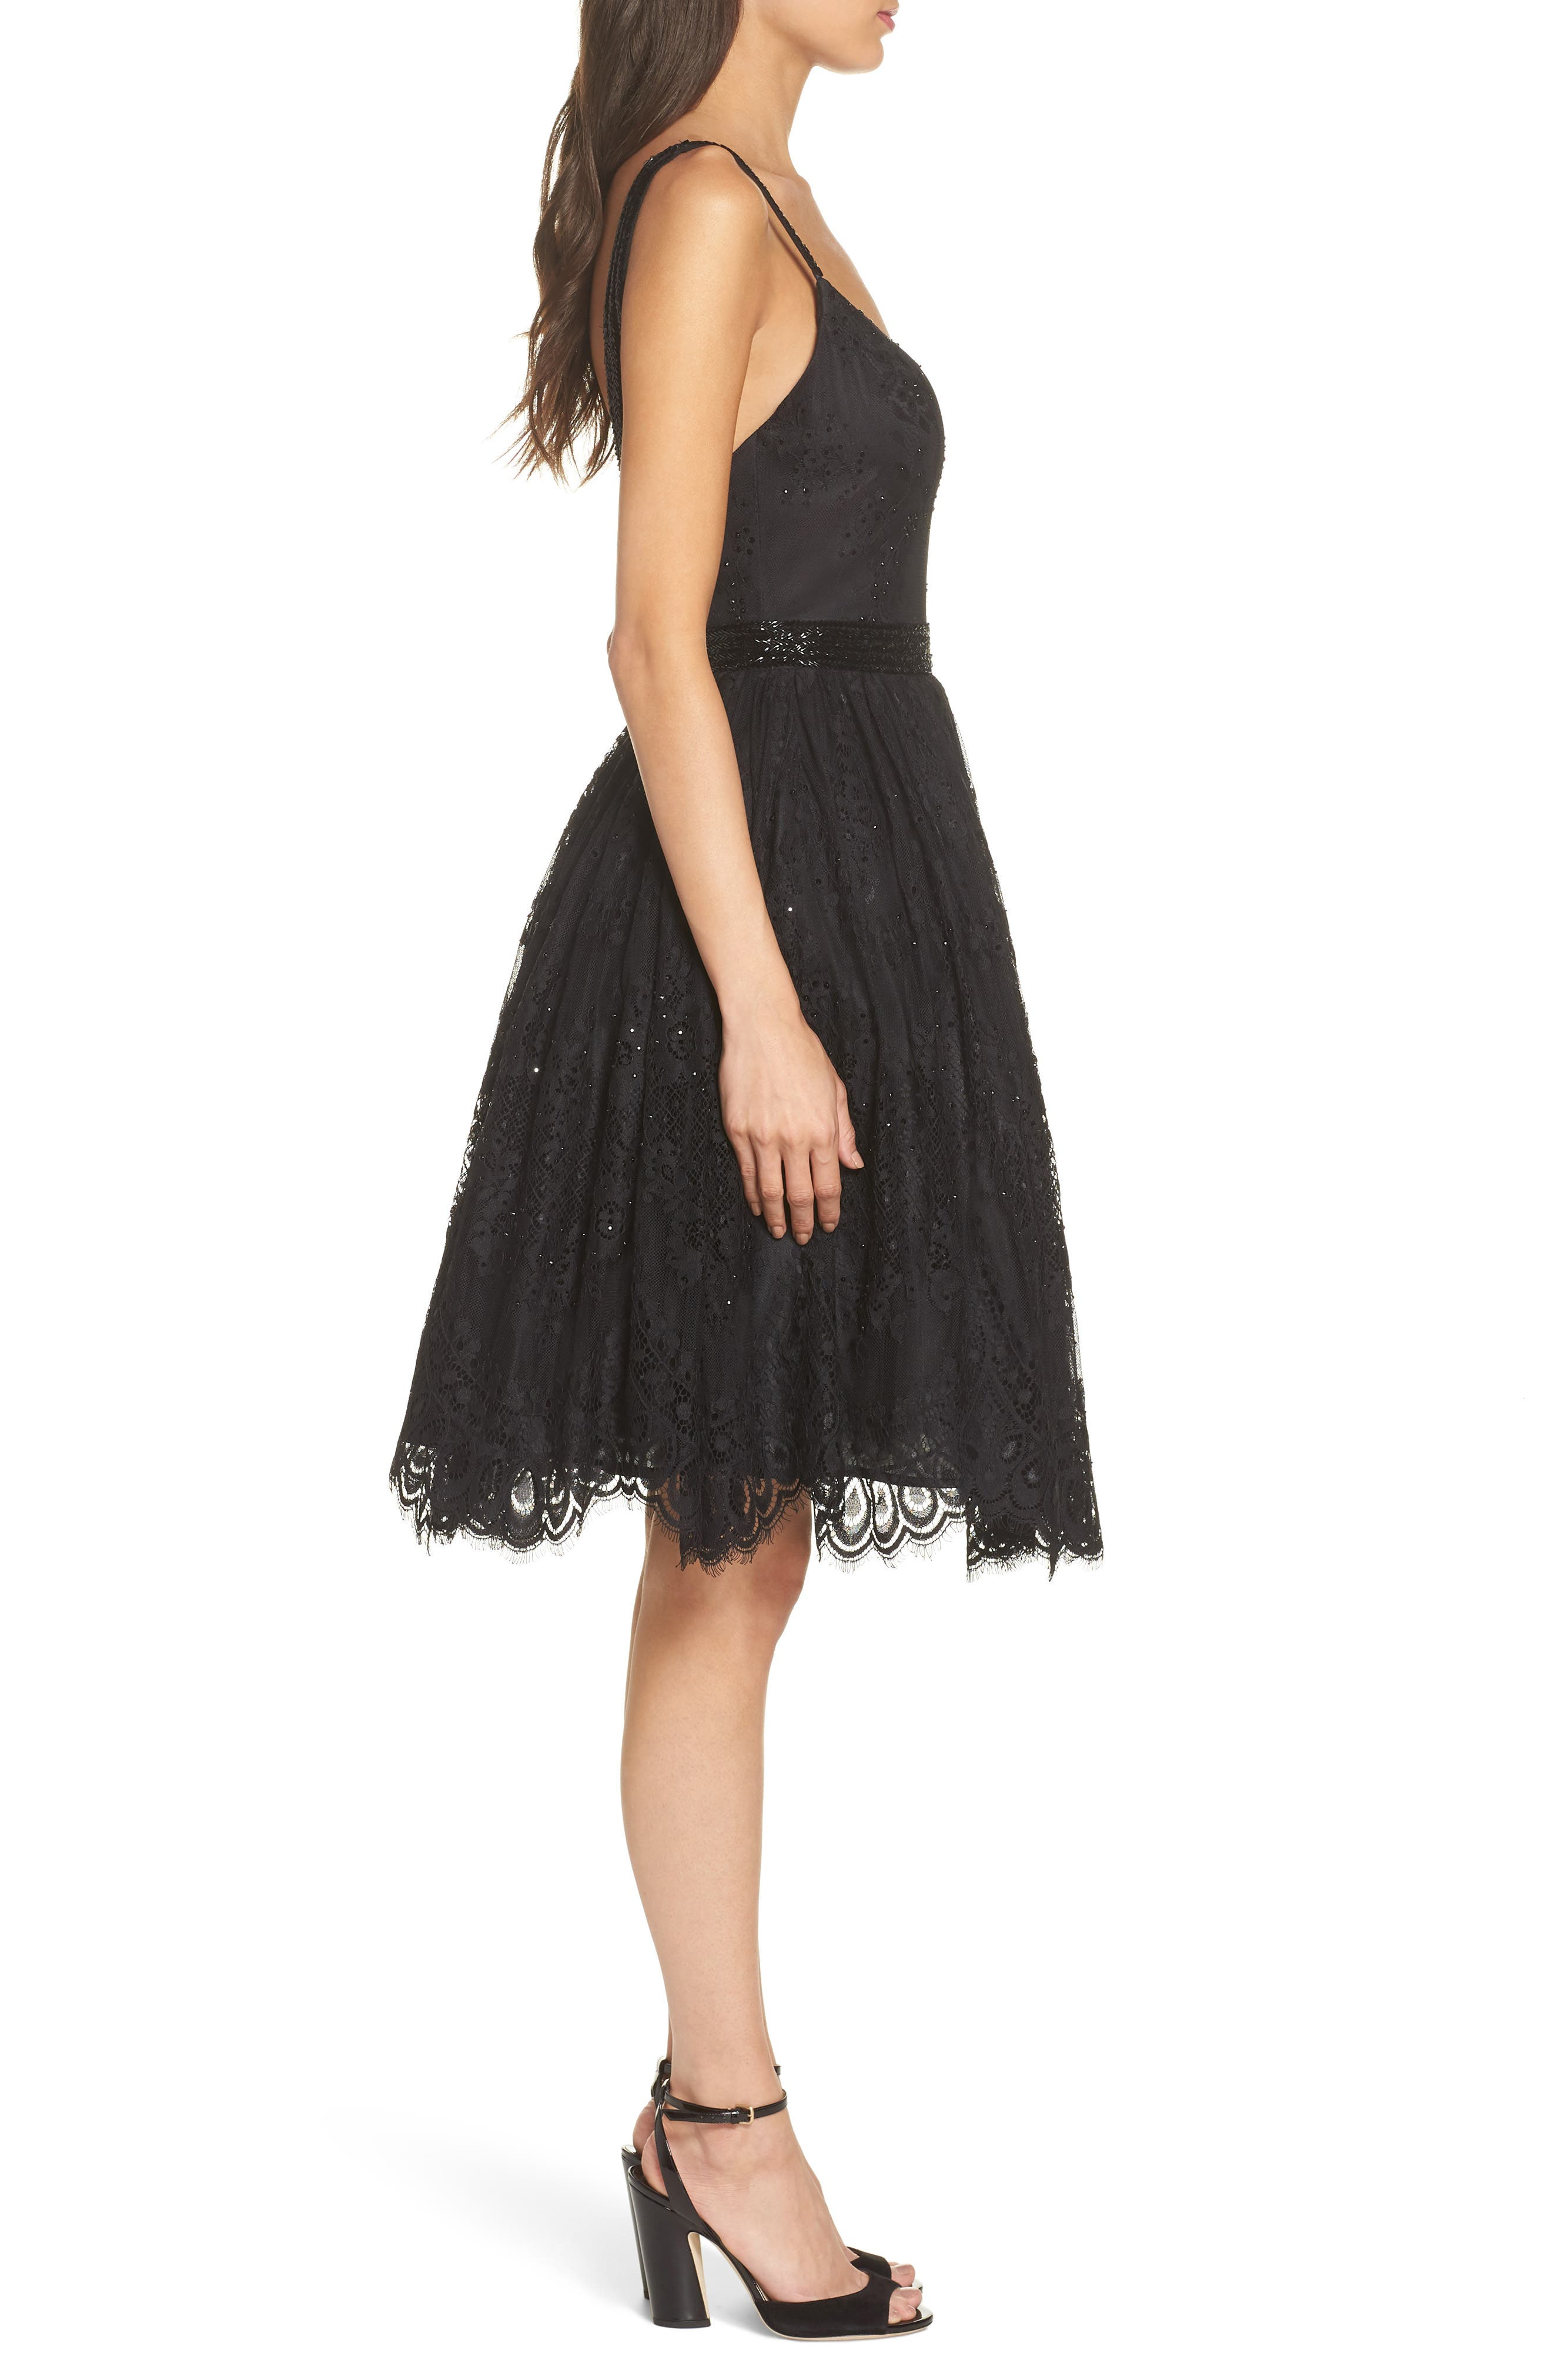 MAC DUGGAL, Sweetheart Neck Lace Party Dress, Alternate thumbnail 4, color, BLACK